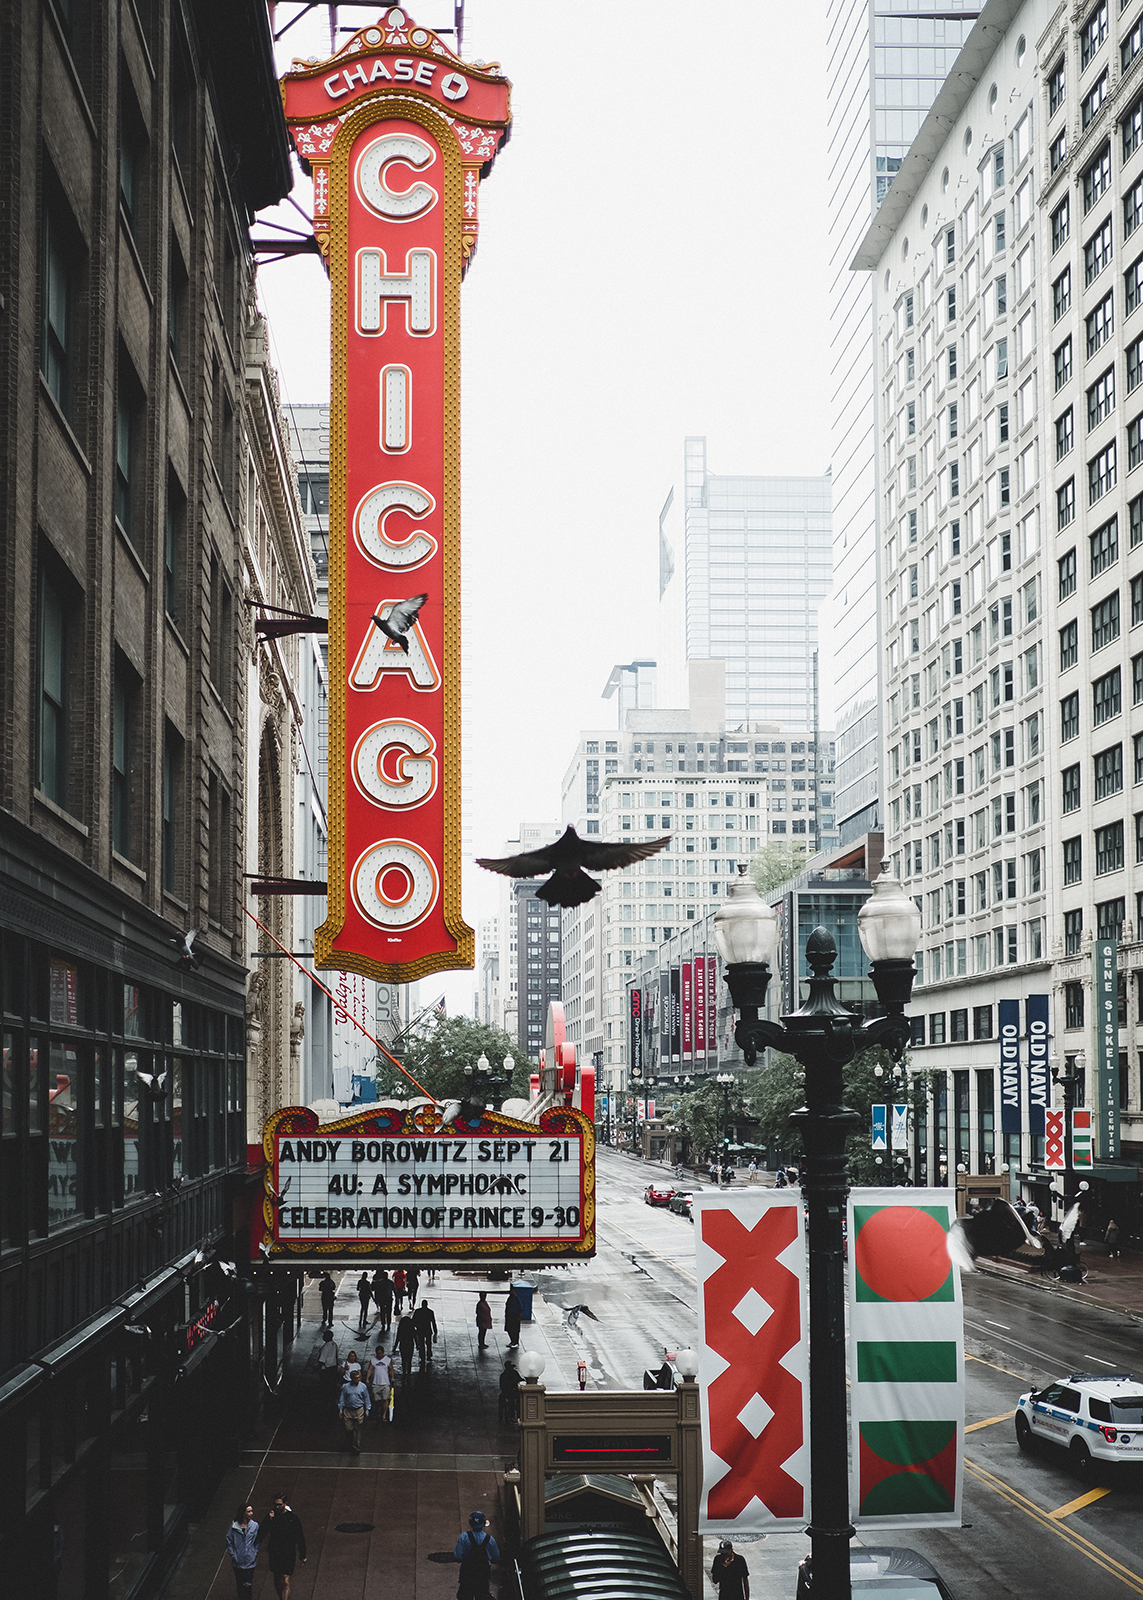 The Chicago Theatre av Tor Arne Hotvedt